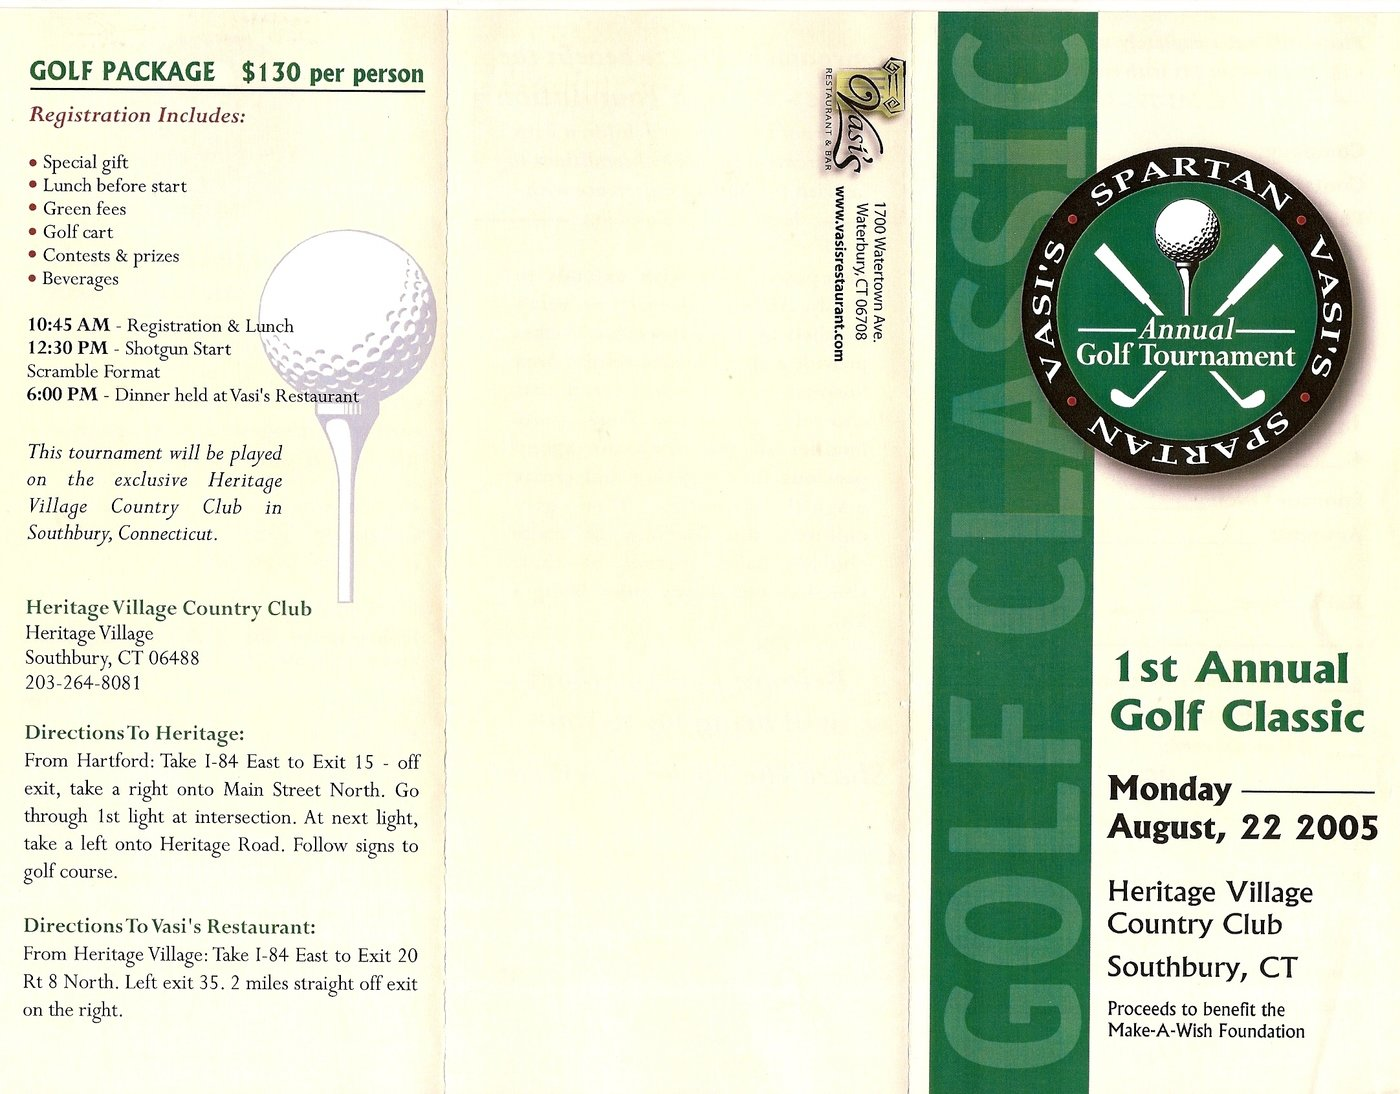 Vasi's/Spartant's Golf Tournament Brochure by Michelle R